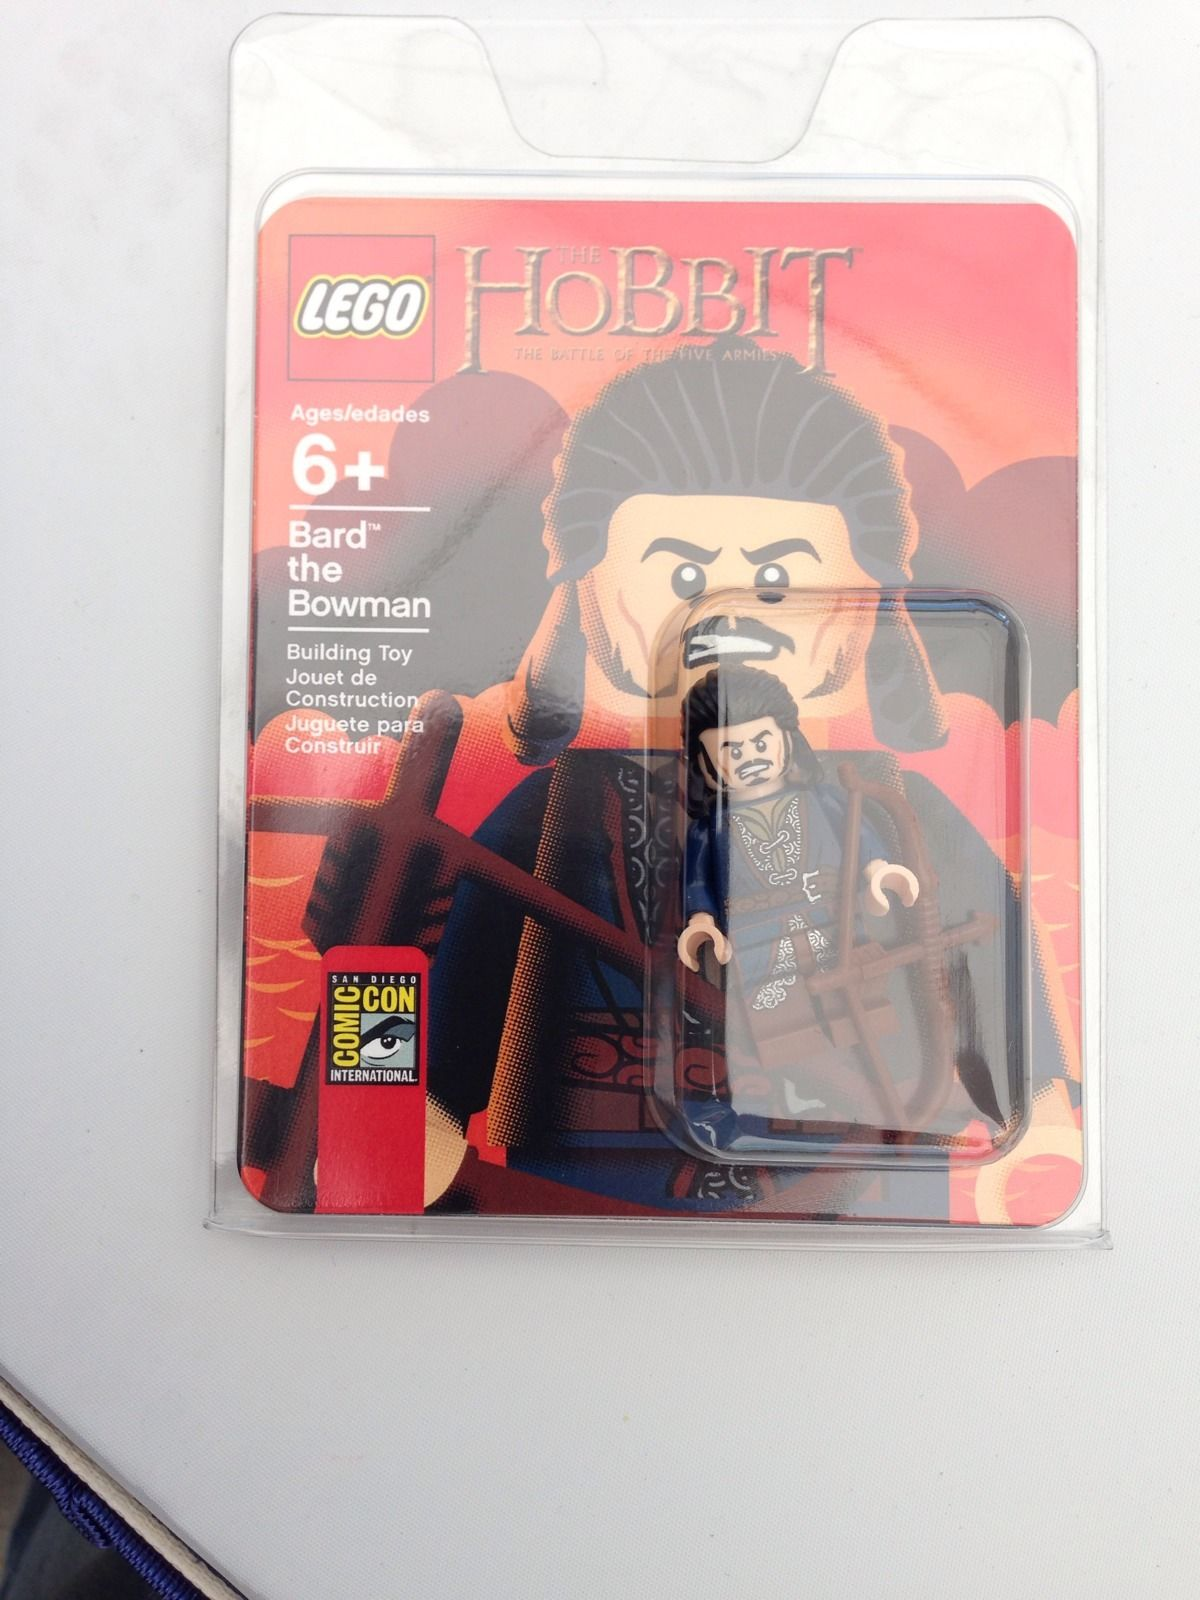 Comic-Con Exclusive Bard the Bowman Giveaway